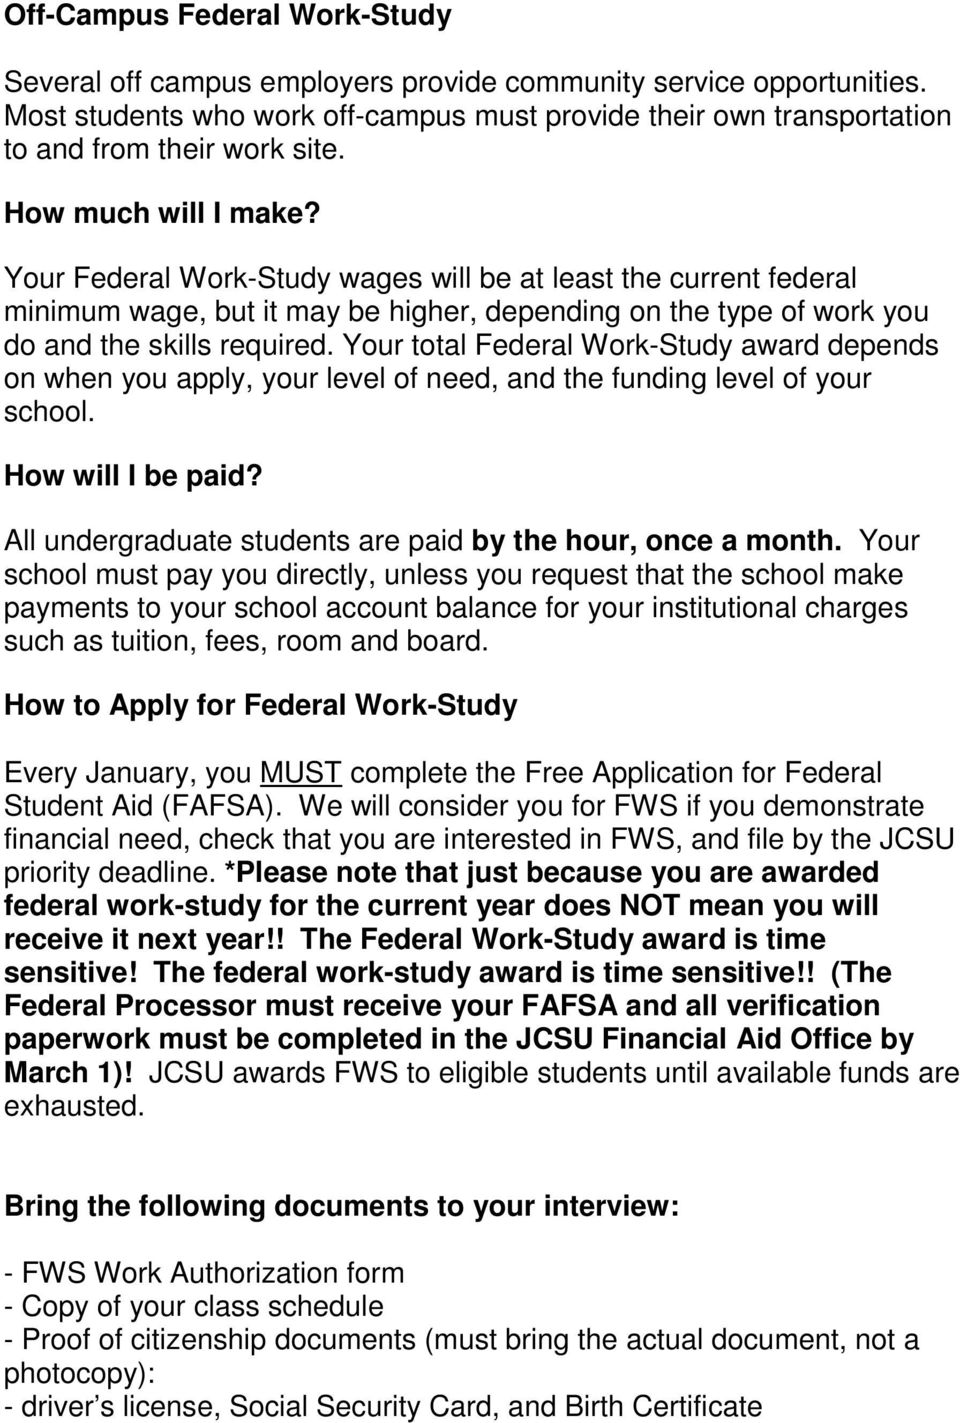 Your total Federal Work-Study award depends on when you apply, your level of need, and the funding level of your school. How will I be paid?